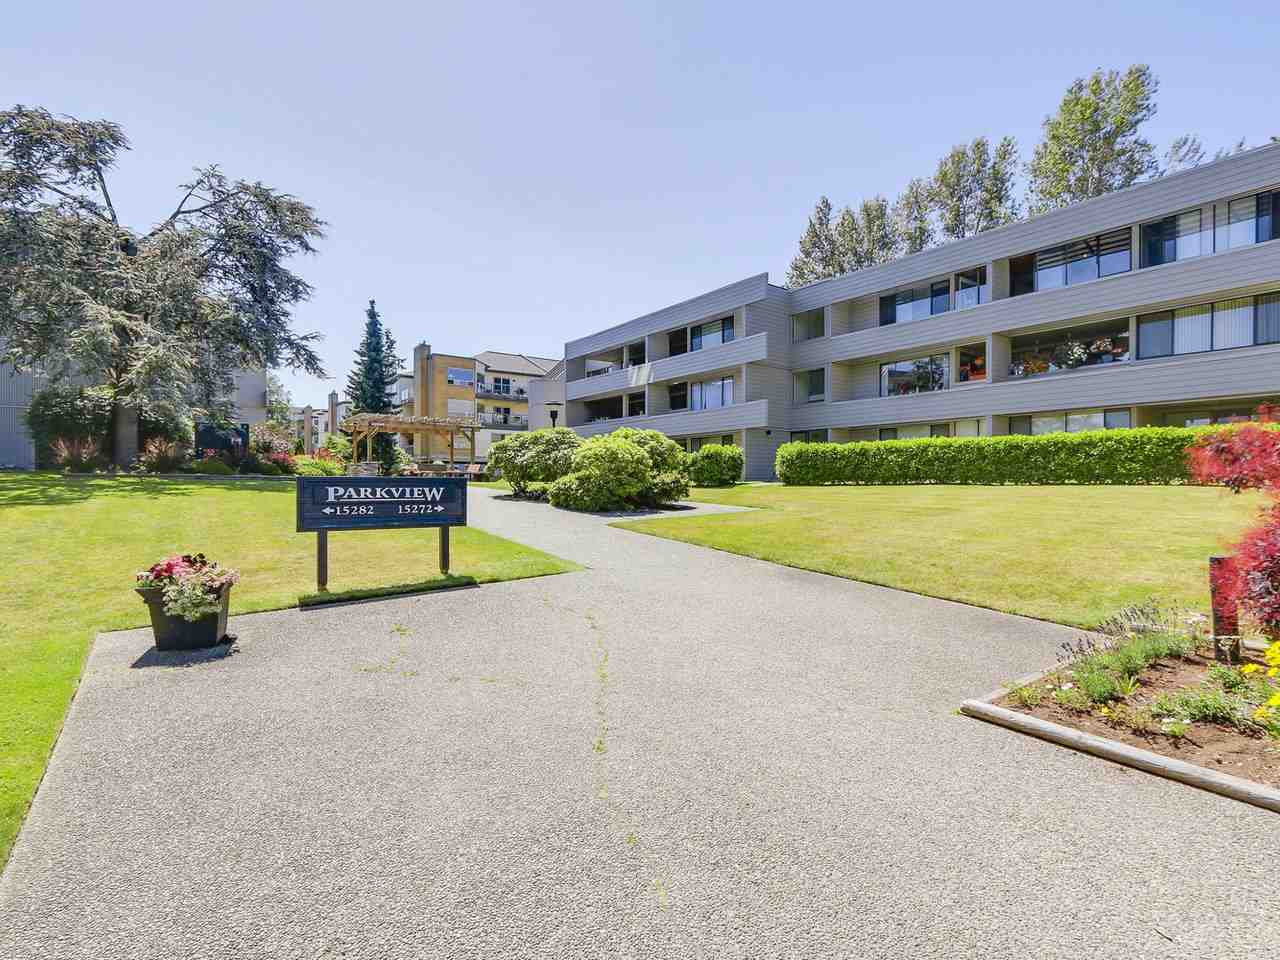 "Main Photo: 107 15272 19 Avenue in Surrey: King George Corridor Condo for sale in ""PARKVIEW"" (South Surrey White Rock)  : MLS®# R2183797"